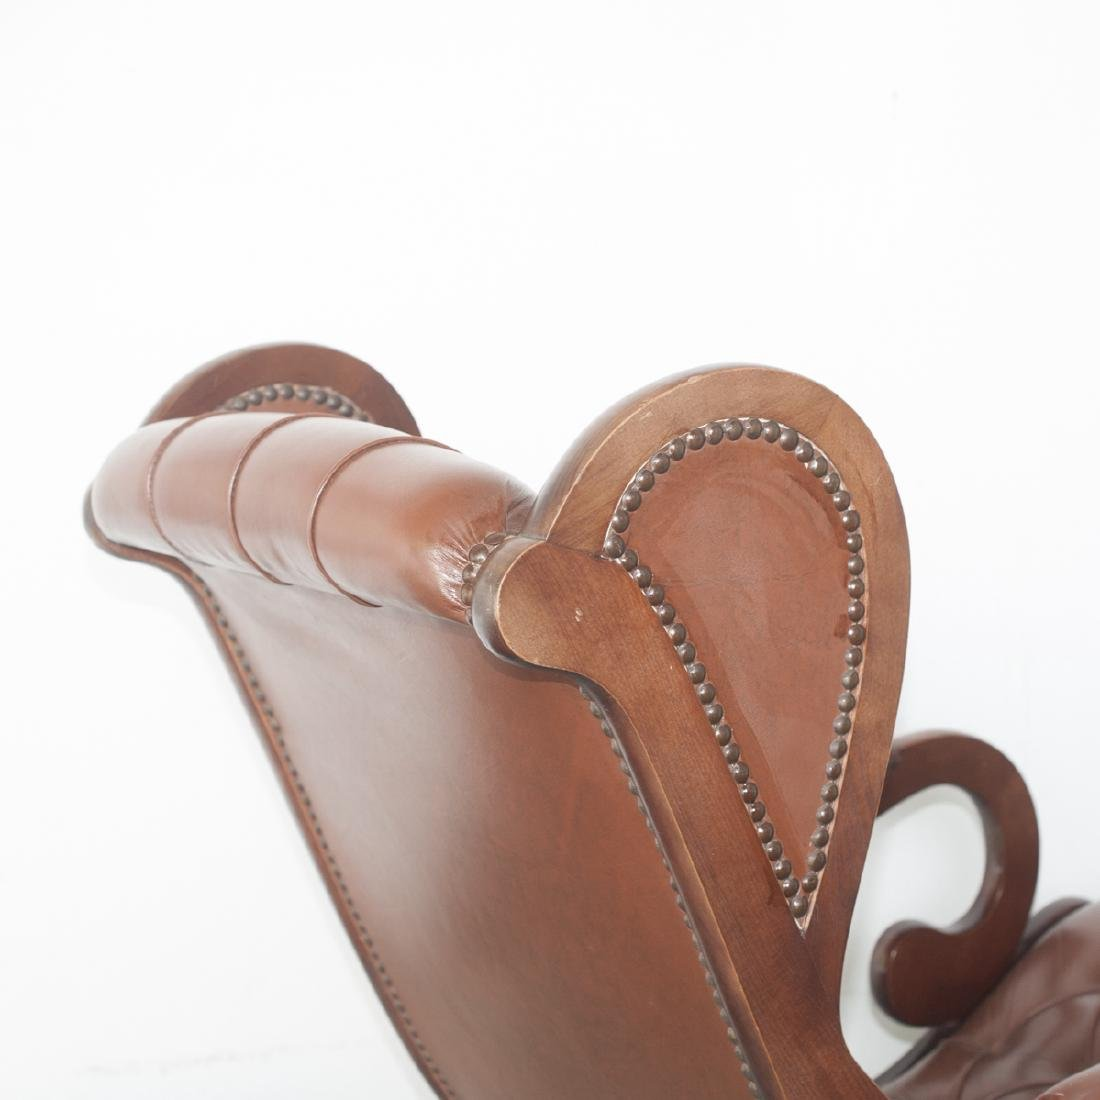 Leather & Wood Rocking Chair - 3